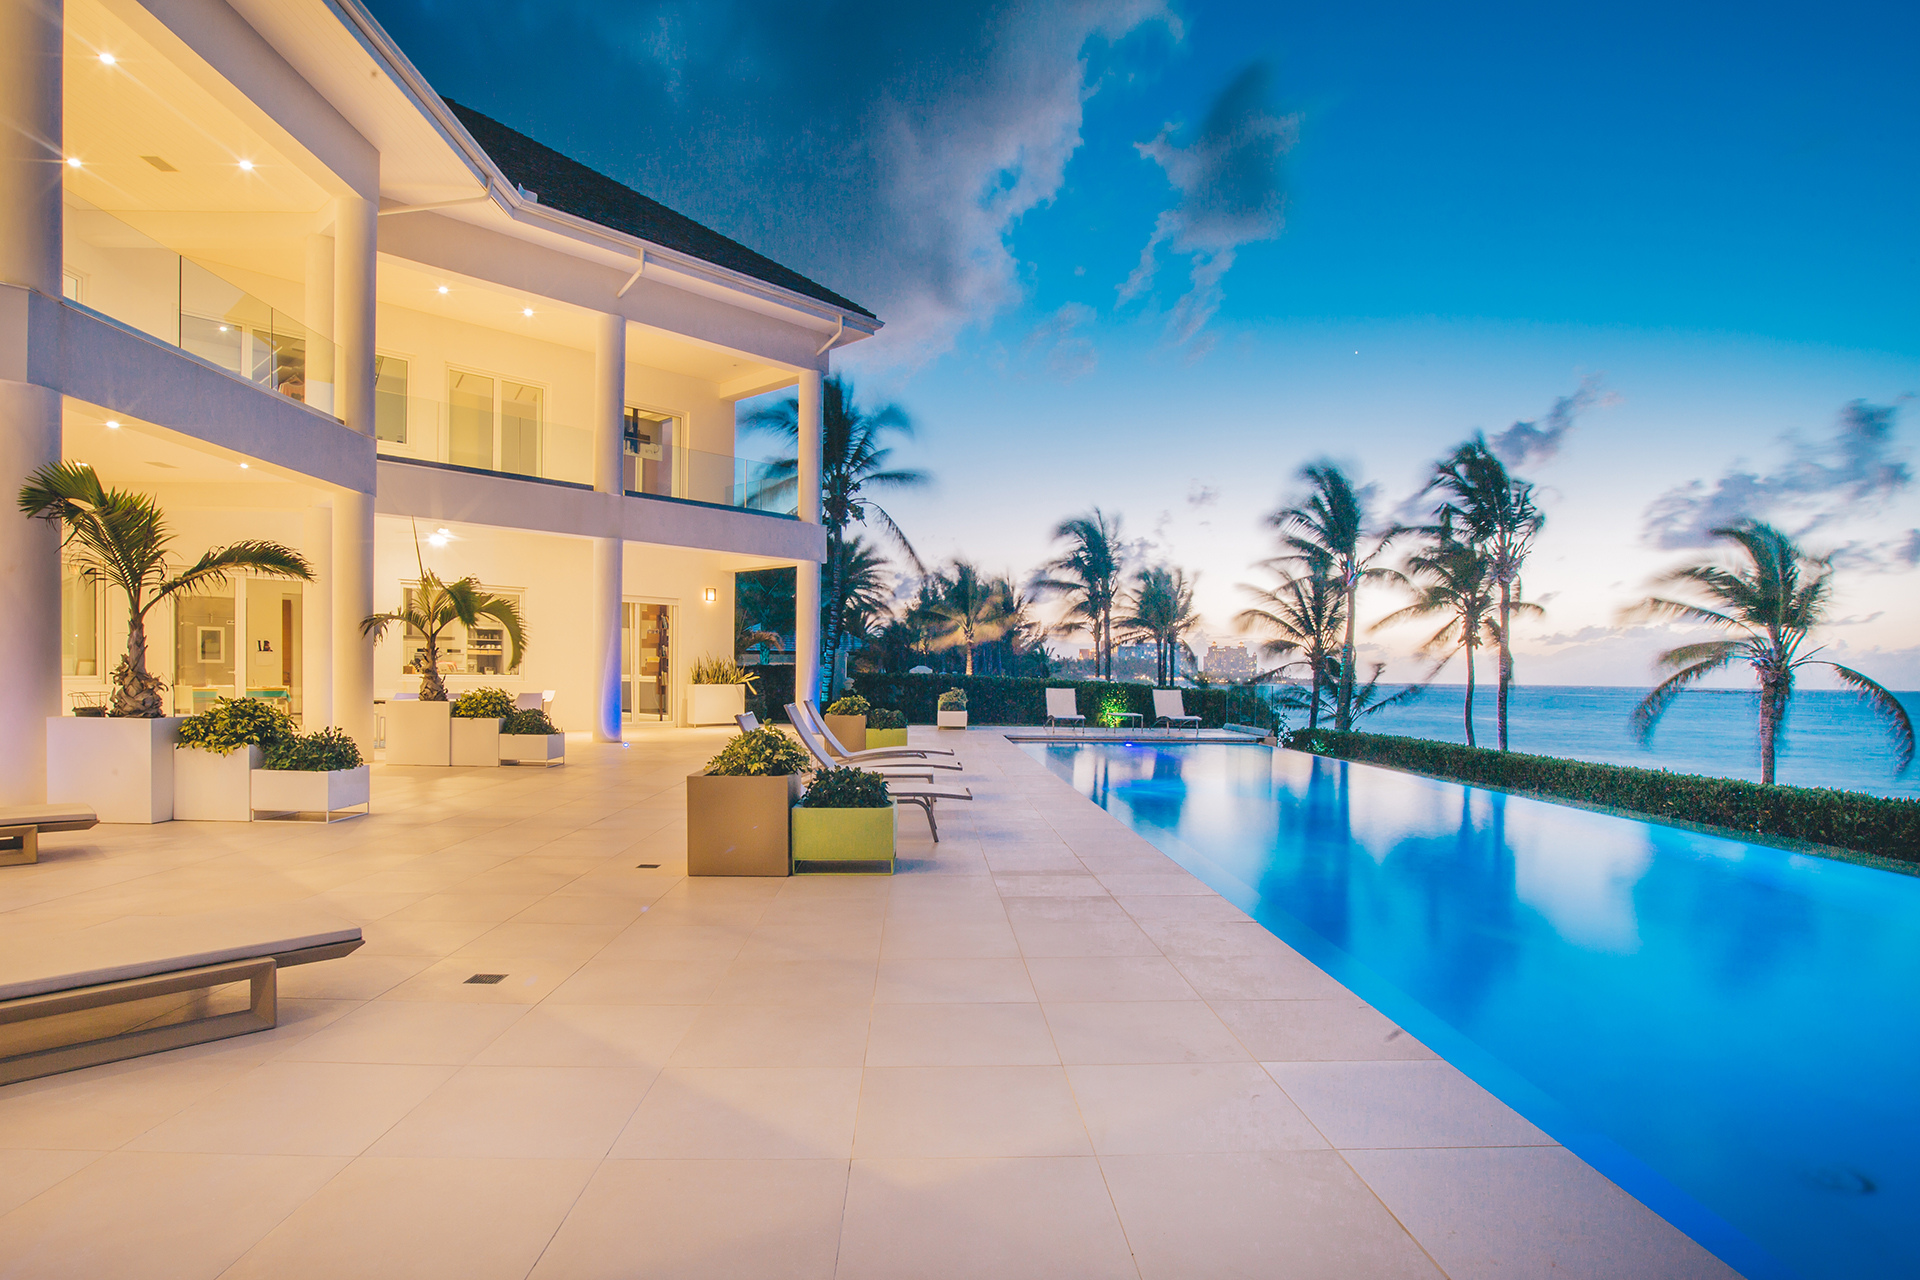 Single Family Home for Sale at 3 North Shore Terrace, A Contemporary Masterpiece Nassau New Providence And Vicinity